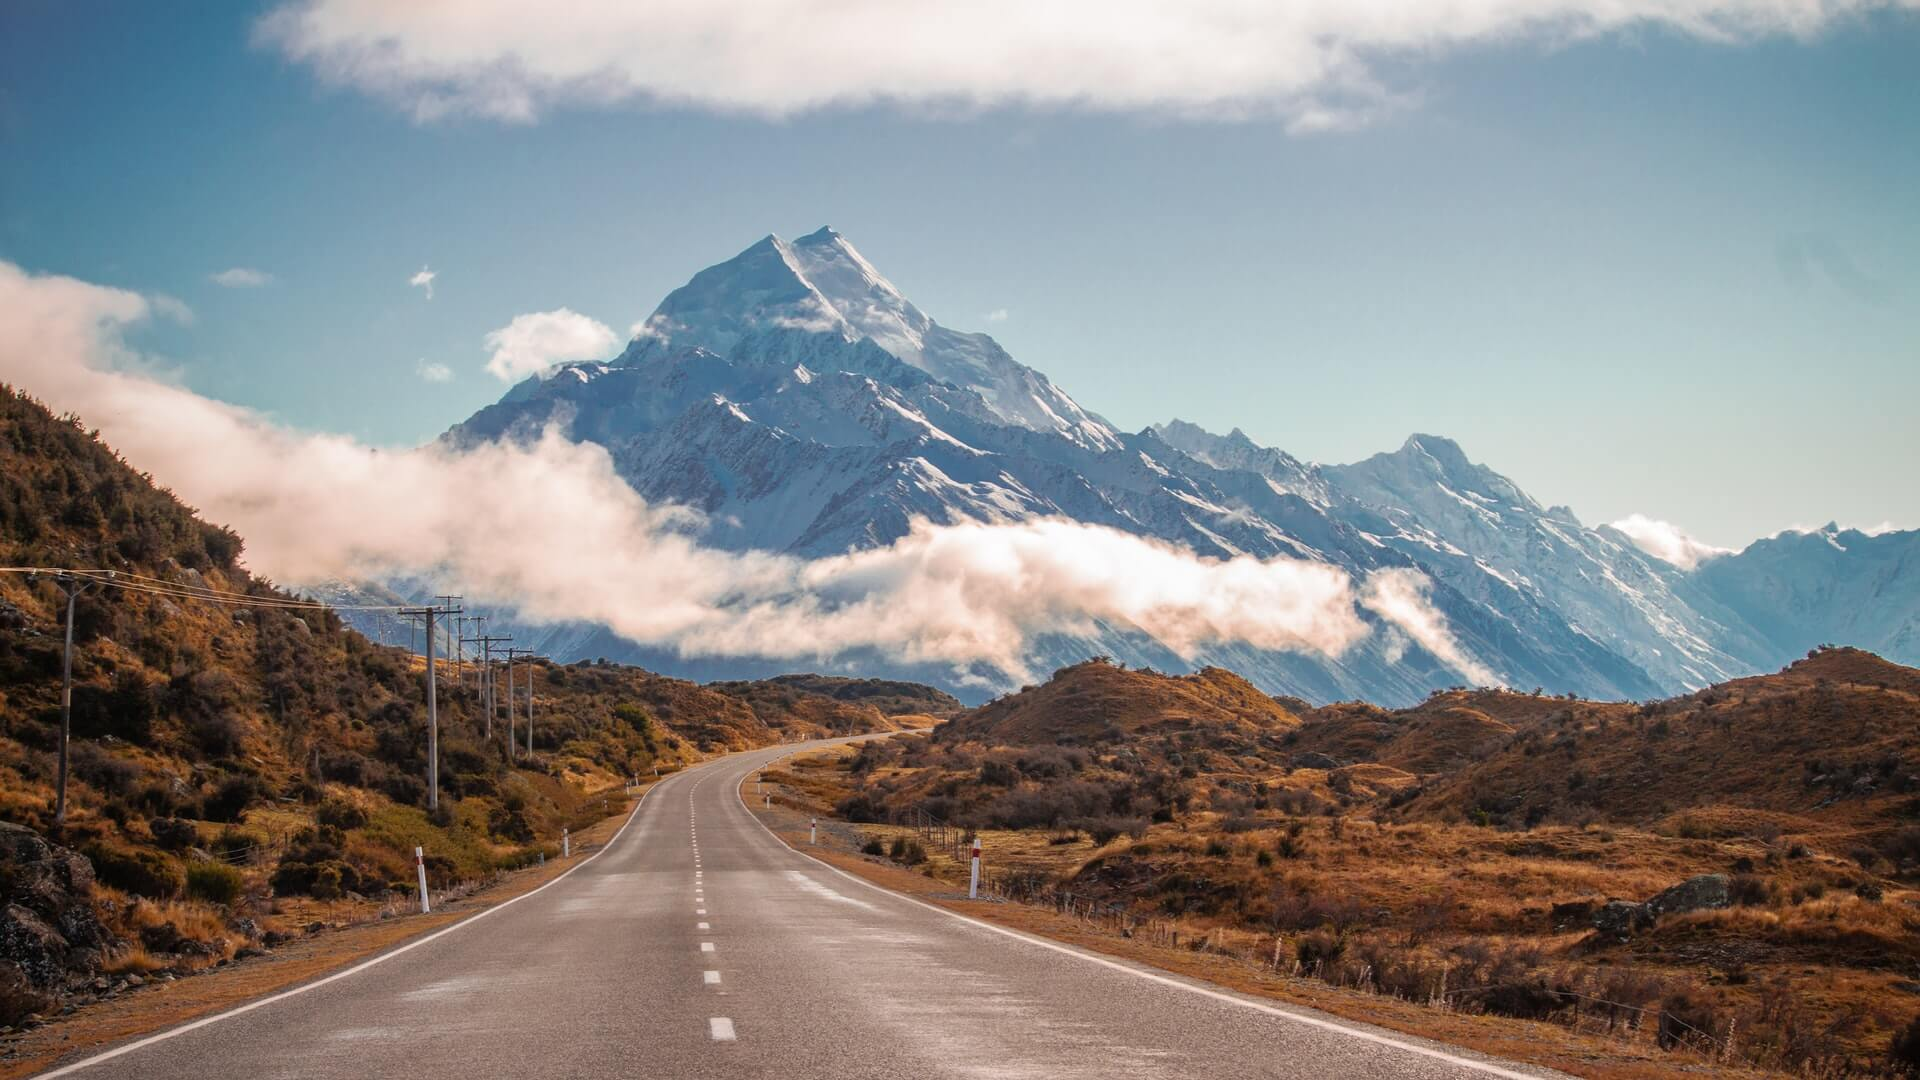 On a driving tour of New Zealand approaching Mount Cook by road